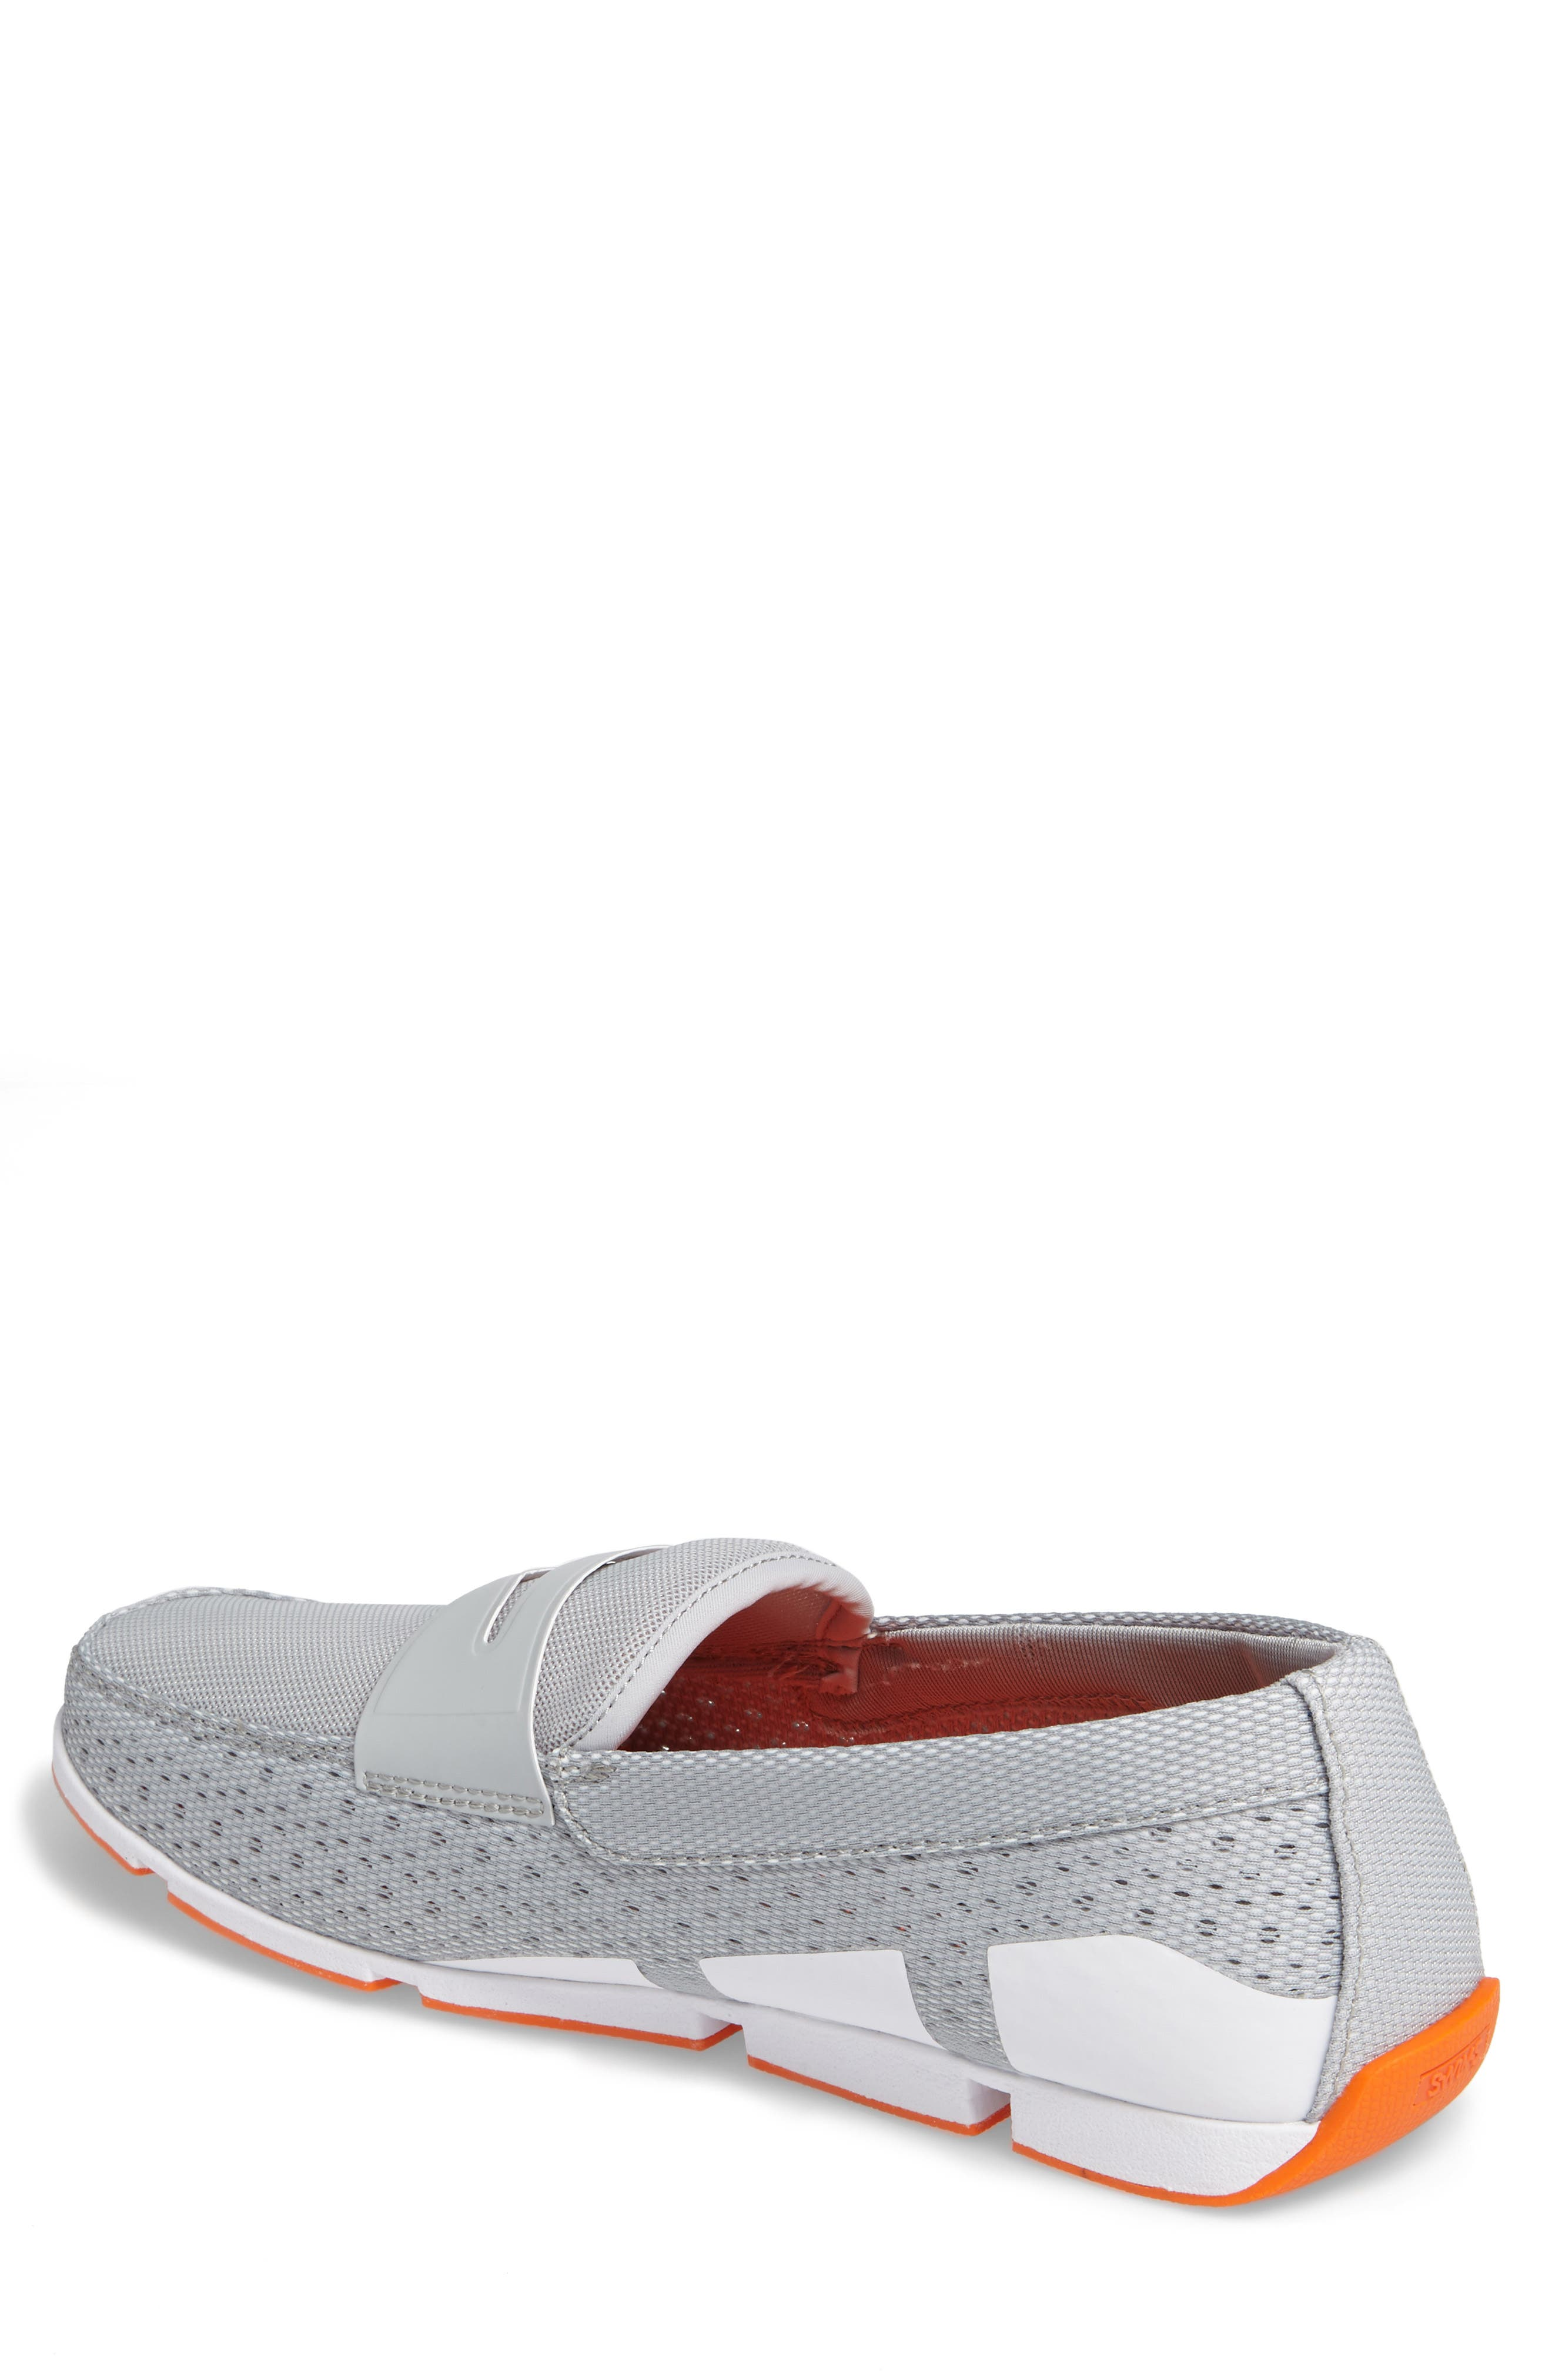 Breeze Penny Loafer,                             Alternate thumbnail 8, color,